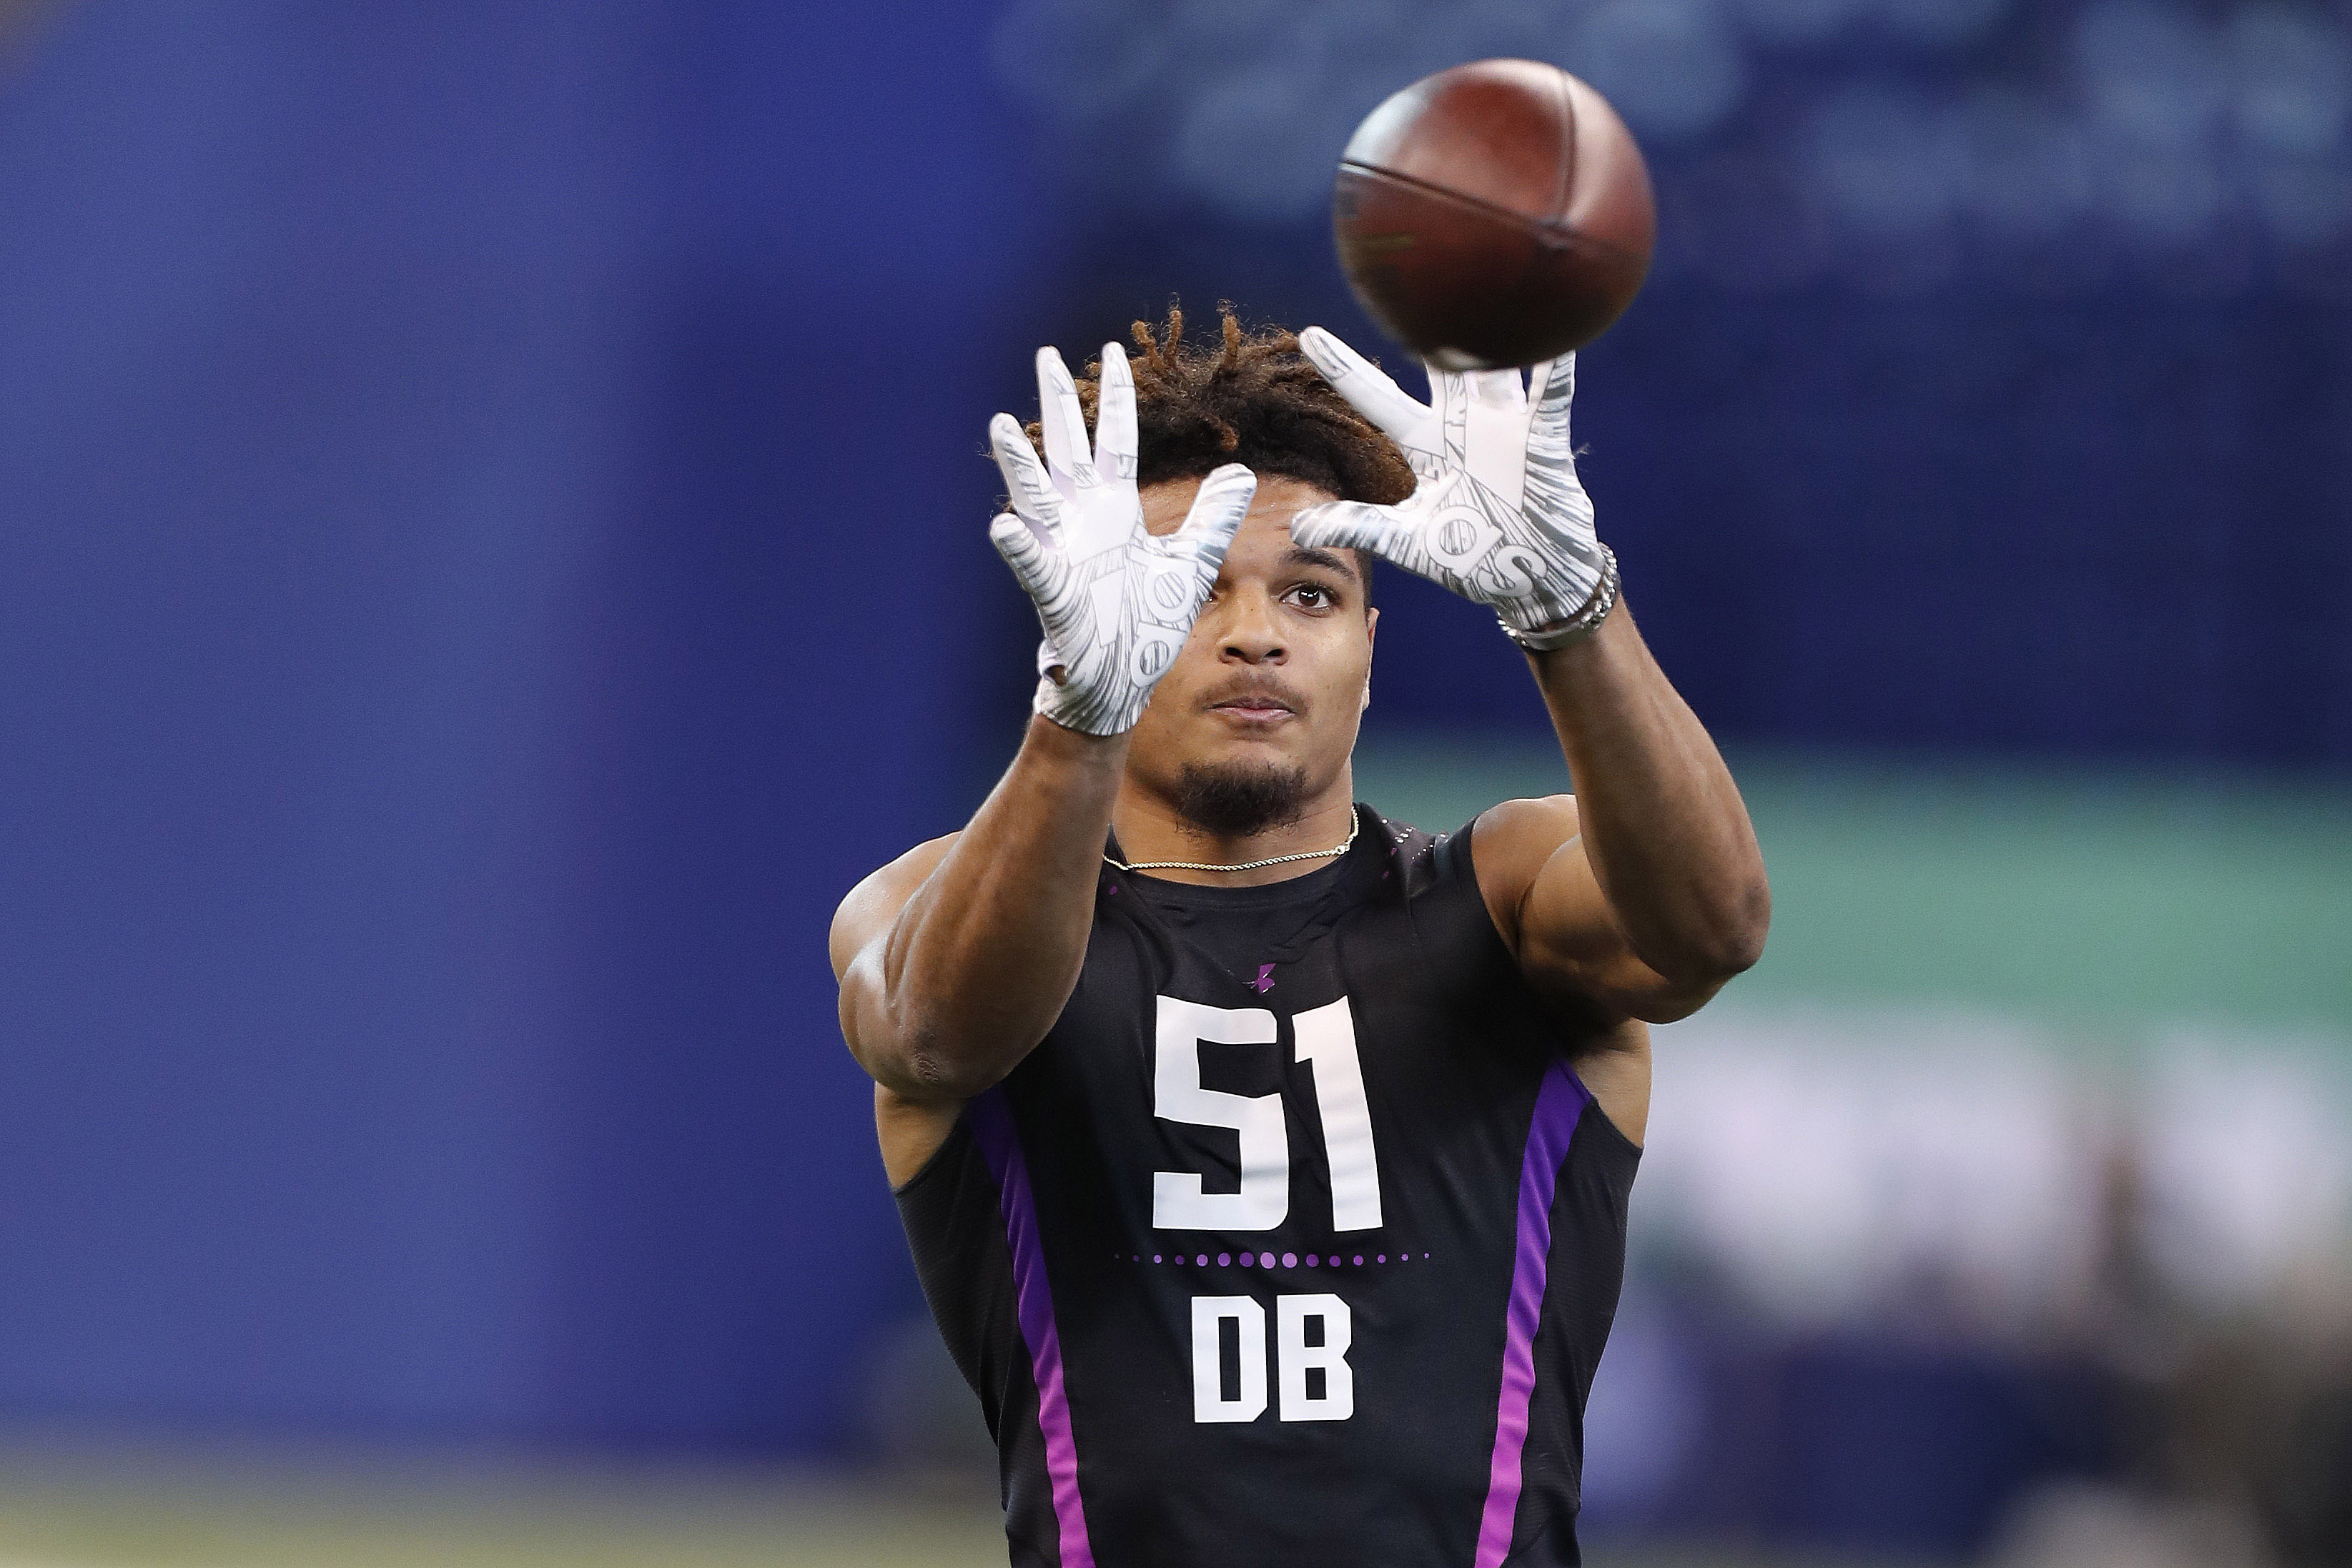 Minkah Fitzpatrick selected by Miami Dolphins with No. 11 pick in NFL Draft